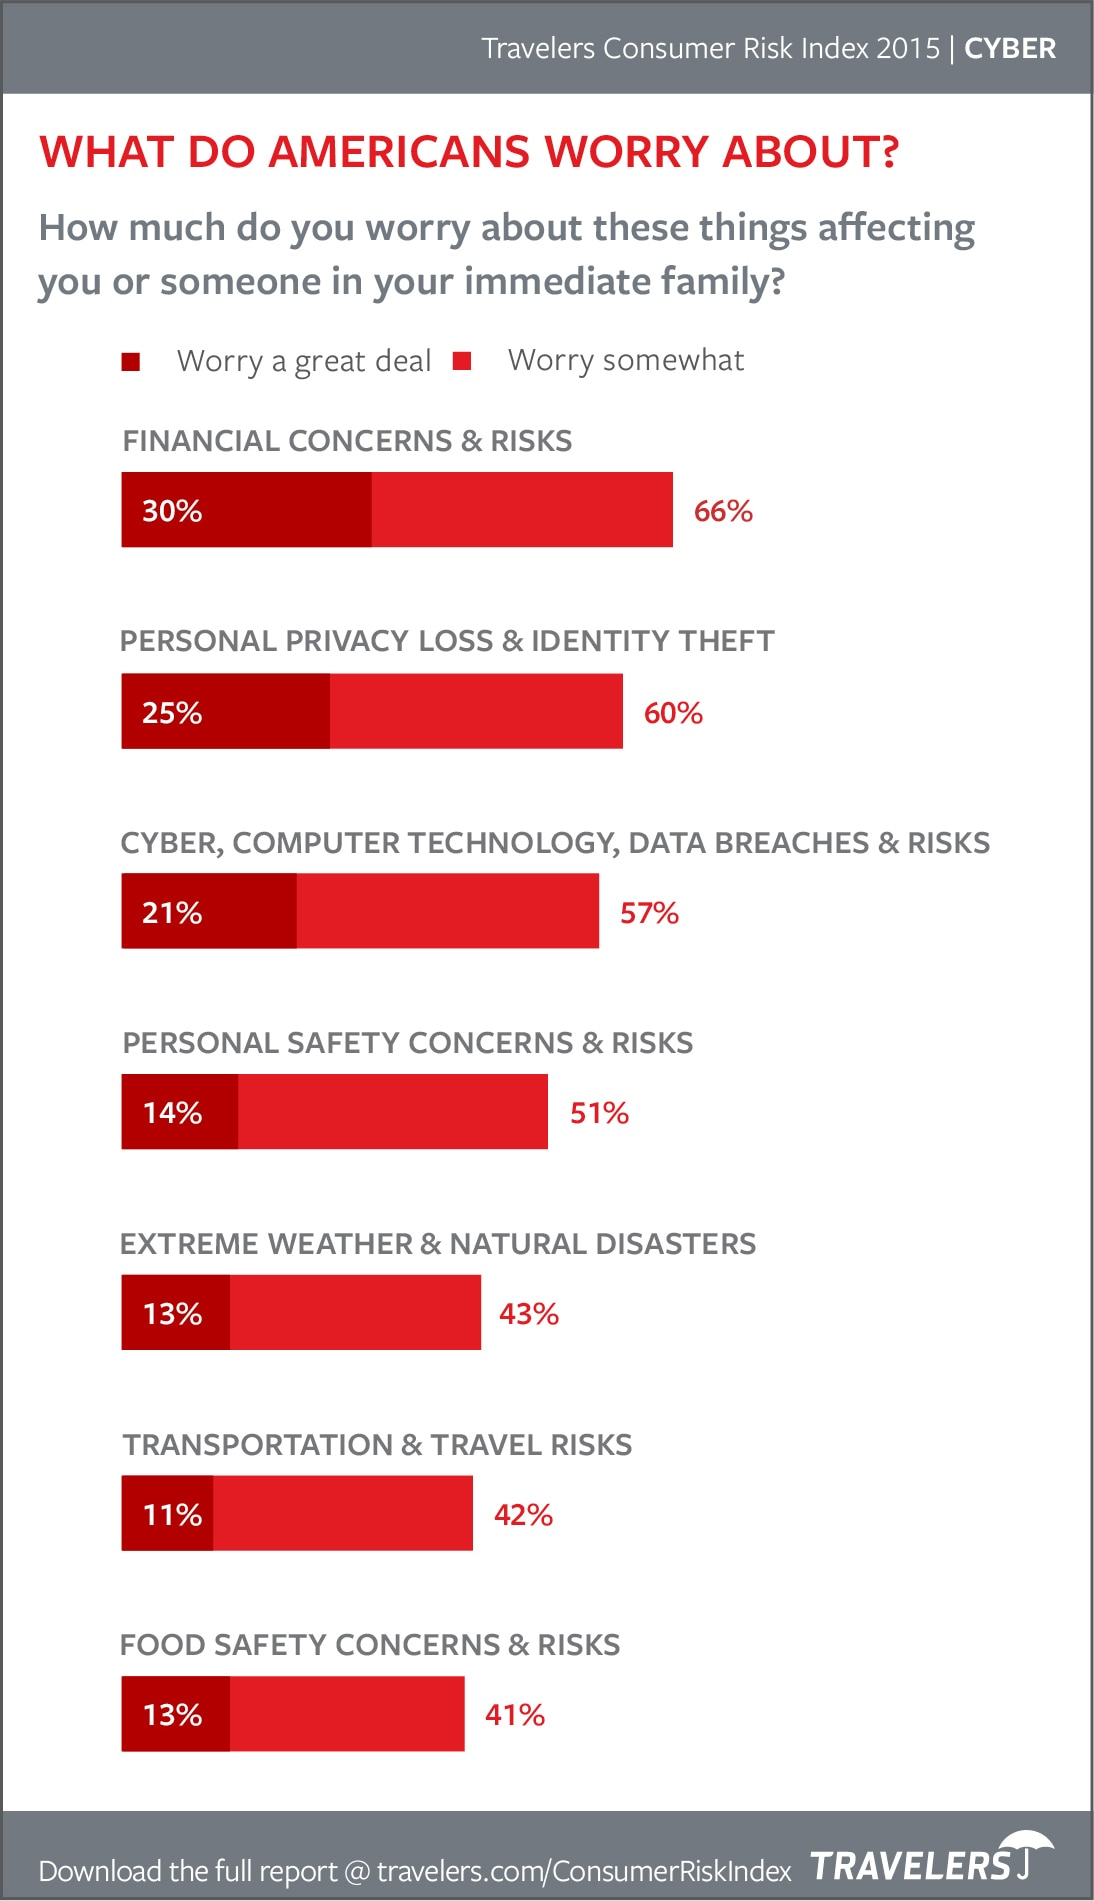 Chart of what Americans worry about from 2015 Consumer Risk Index